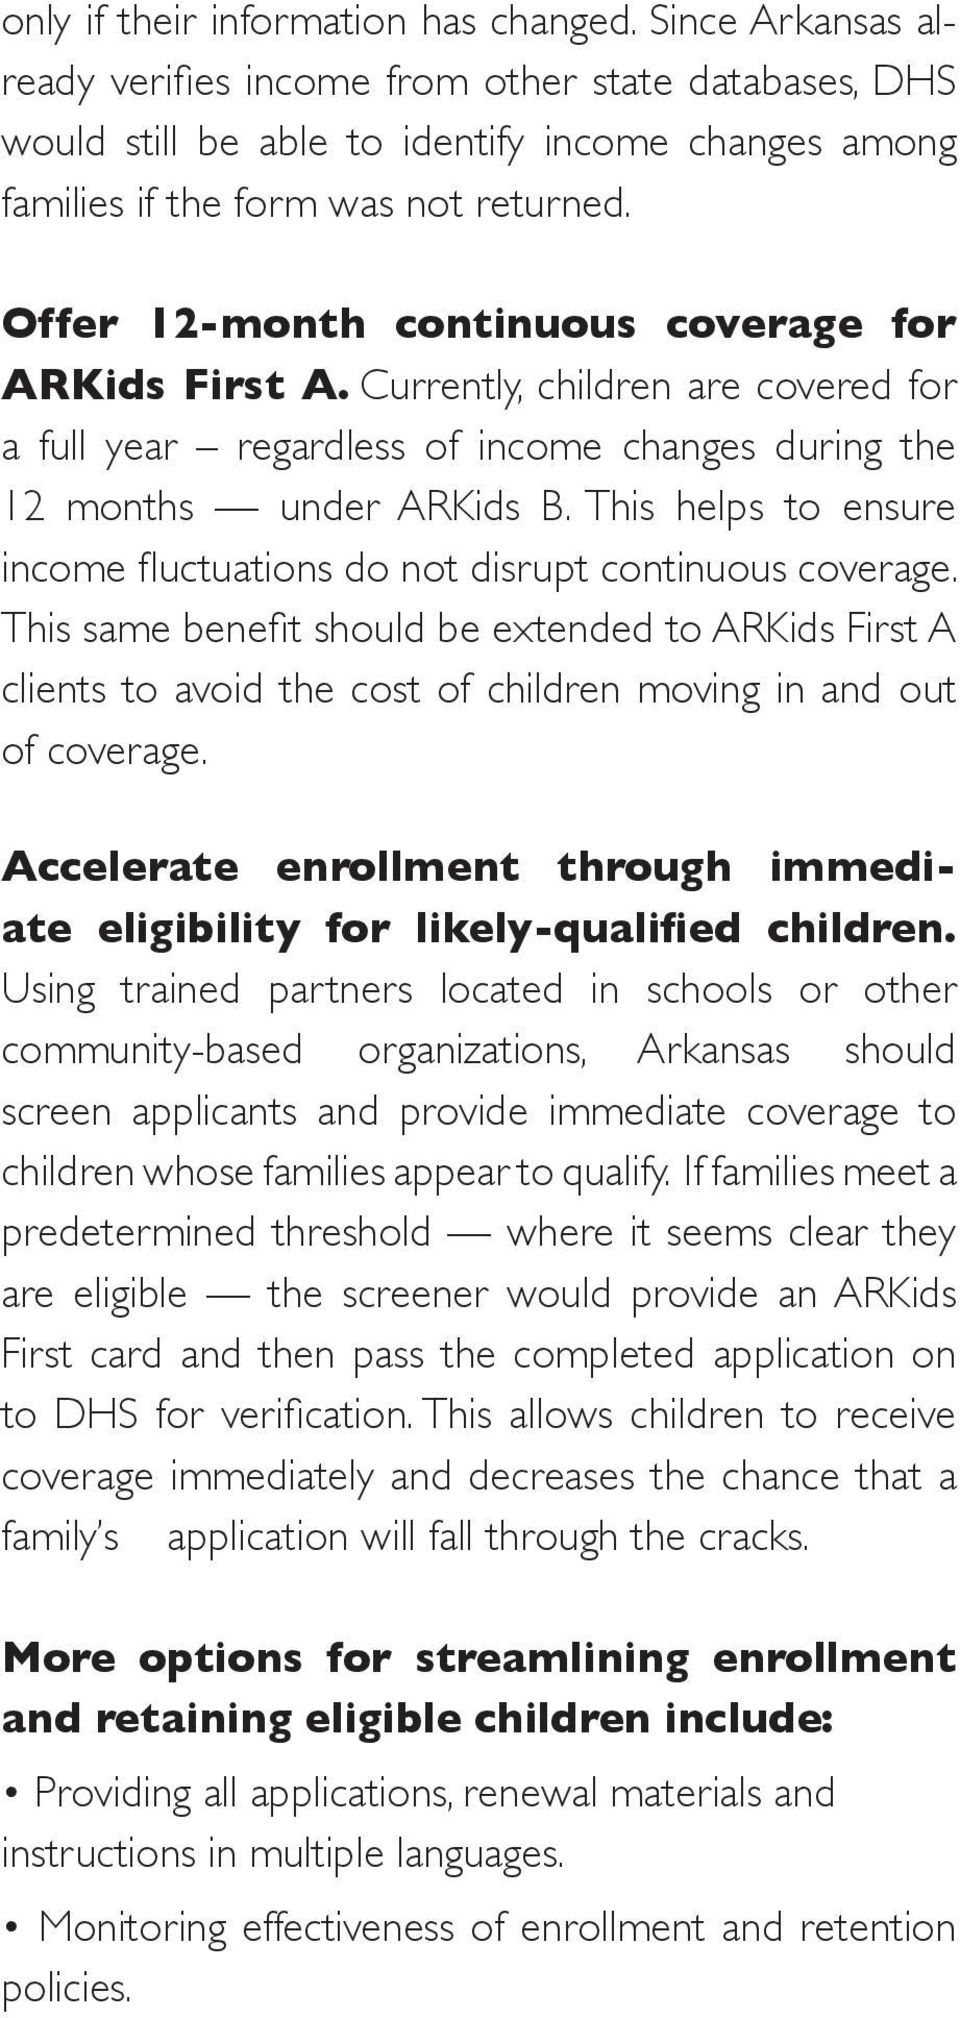 Offer 12-month continuous coverage for ARKids First A. Currently, children are covered for a full year regardless of income changes during the 12 months under ARKids B.